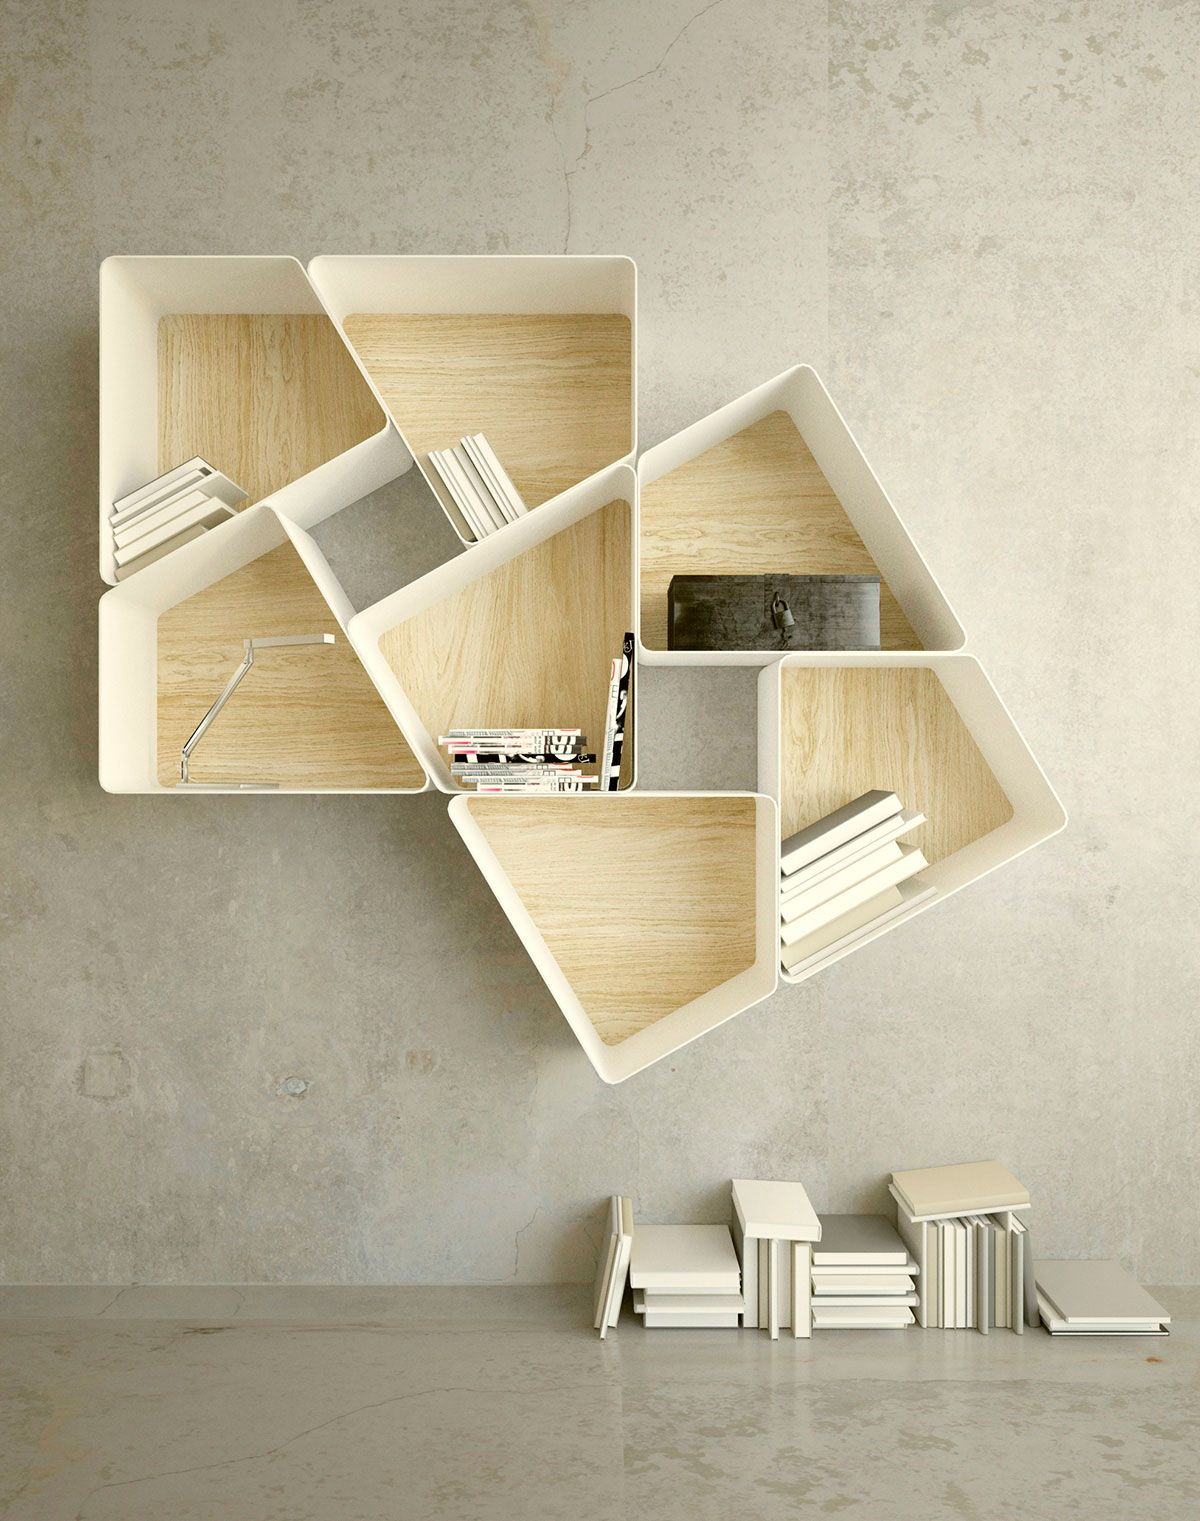 Good Find This Pin And More On Ideas Home. Bookcase From 7 Modular Pieces Design Inspirations